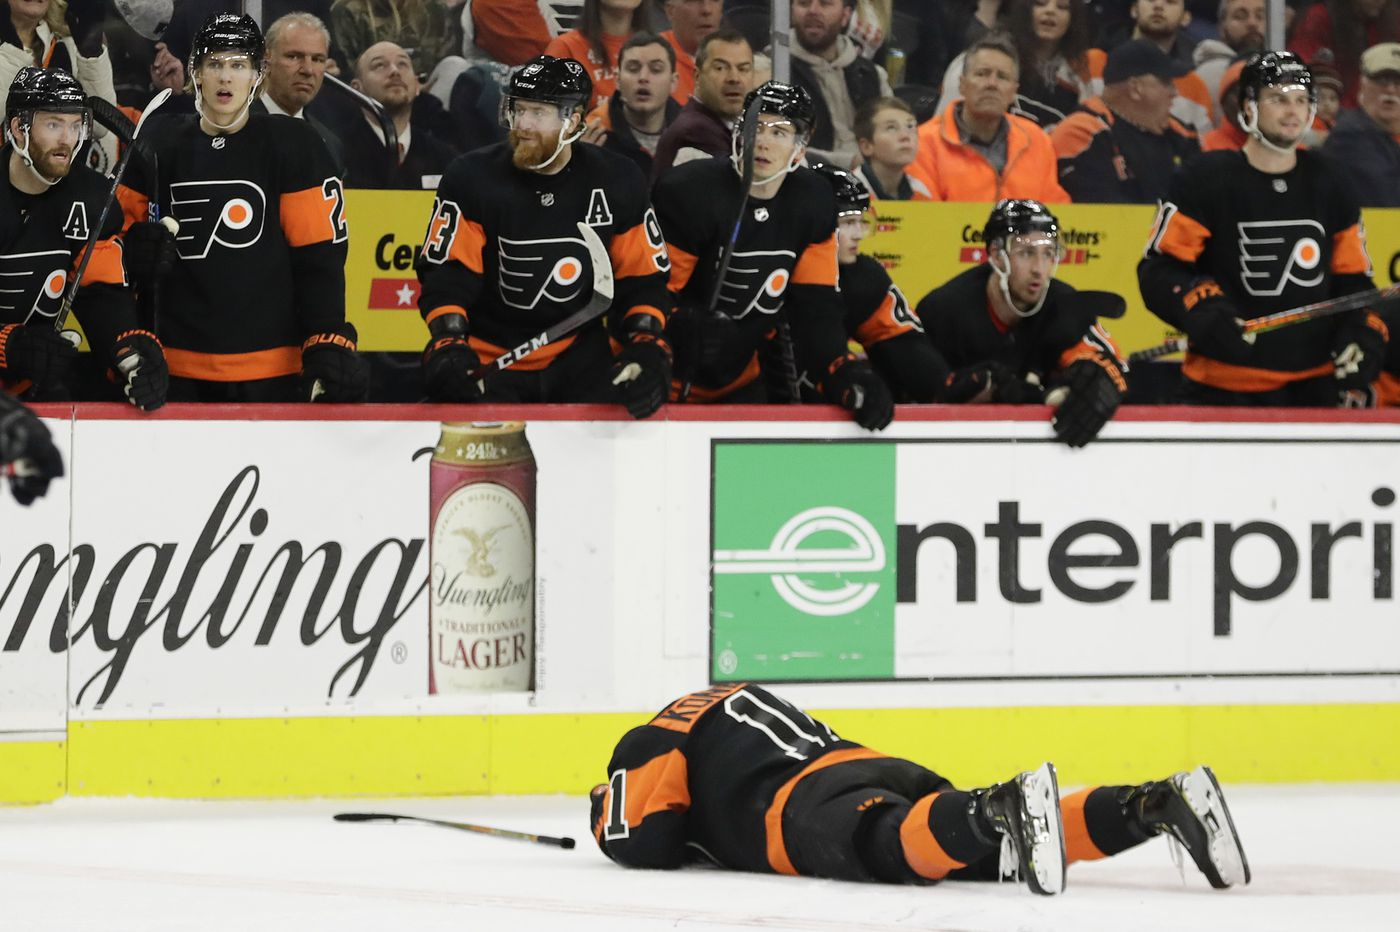 Flyers winger Travis Konecny out indefinitely with a concussion; Phil Myers also injured